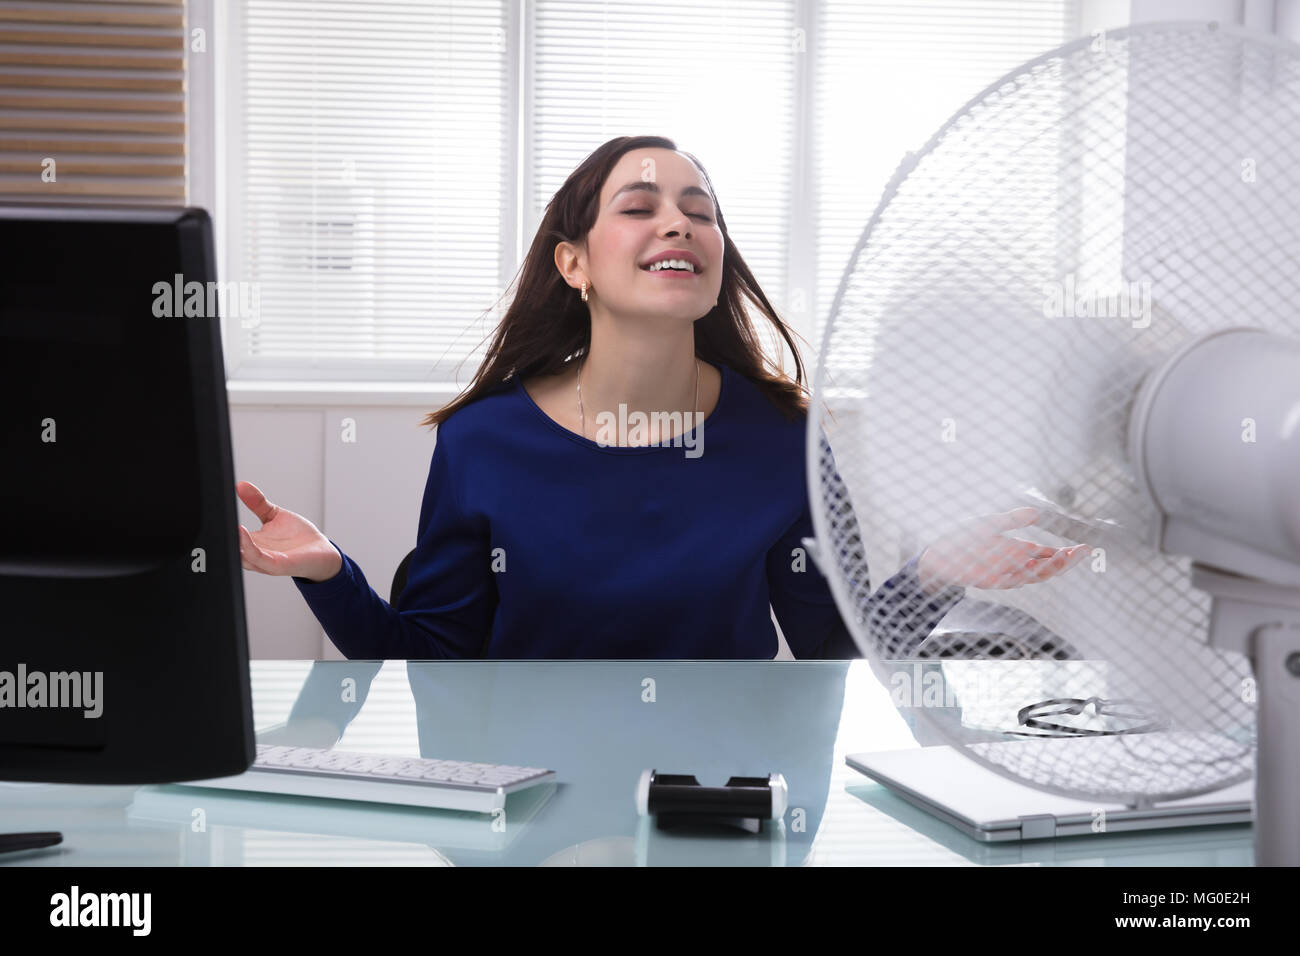 Smiling Young Businesswoman Cooling Herself With Electric Fan During Hot Weather - Stock Image